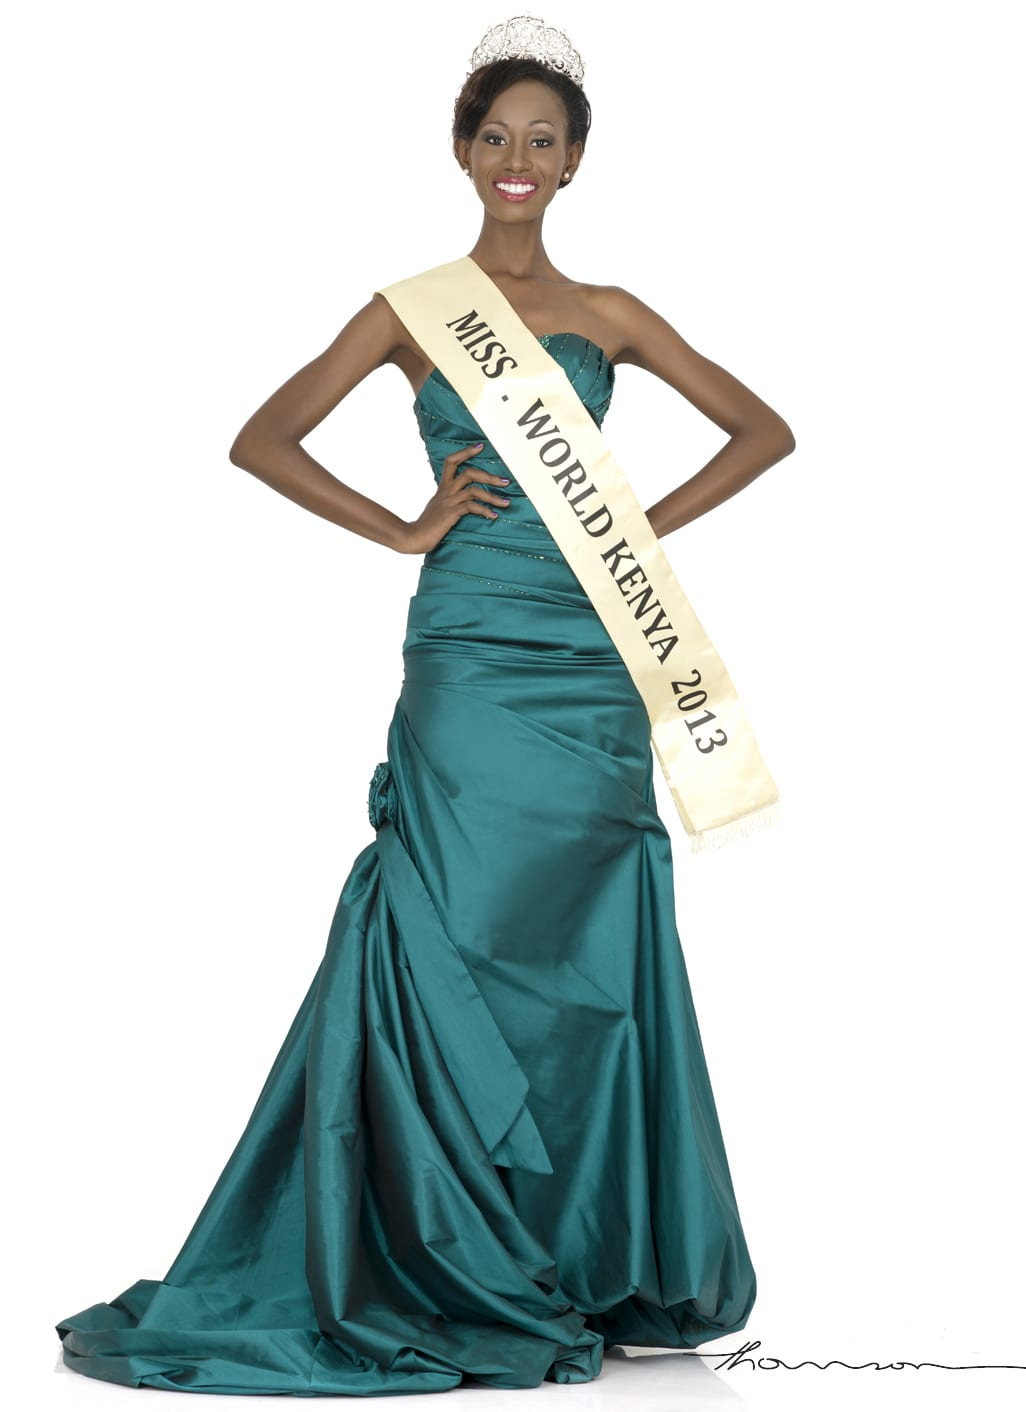 Become a miss world Kenya contestant